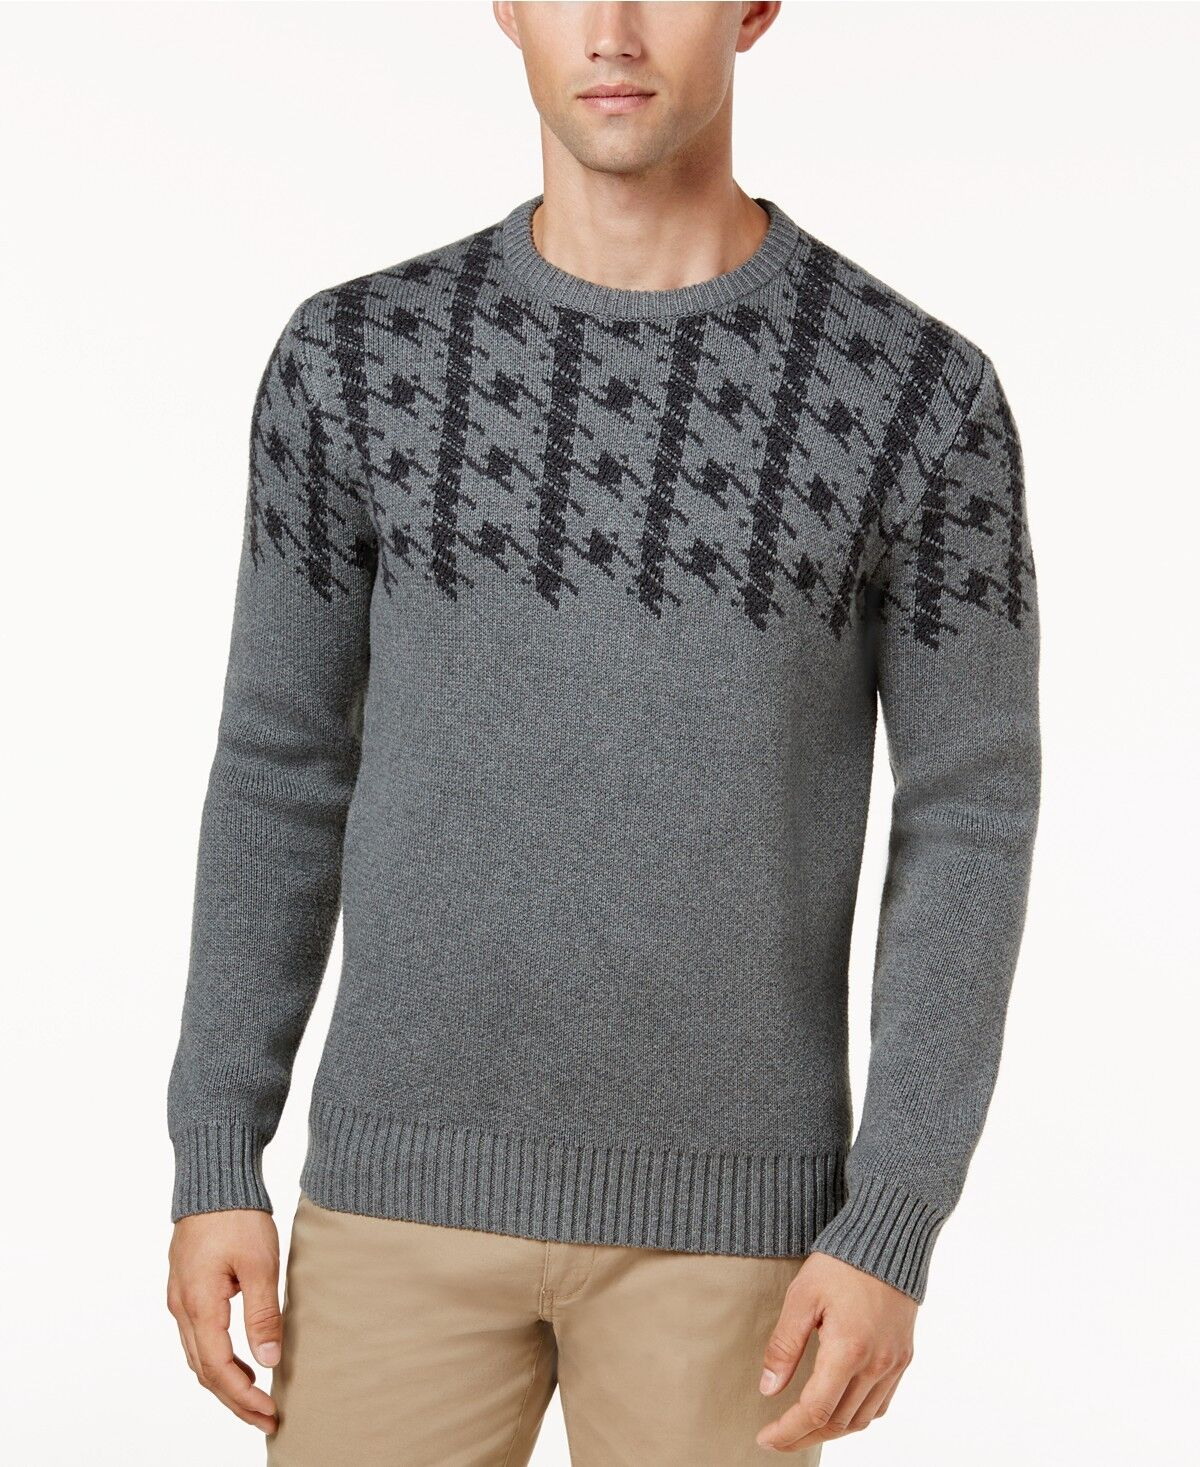 Ben Sherman Jacquard Uomo's Dogtooth Jacquard Sherman Sweater, Size XL, Color Gris, ( 109) NEW dfff19